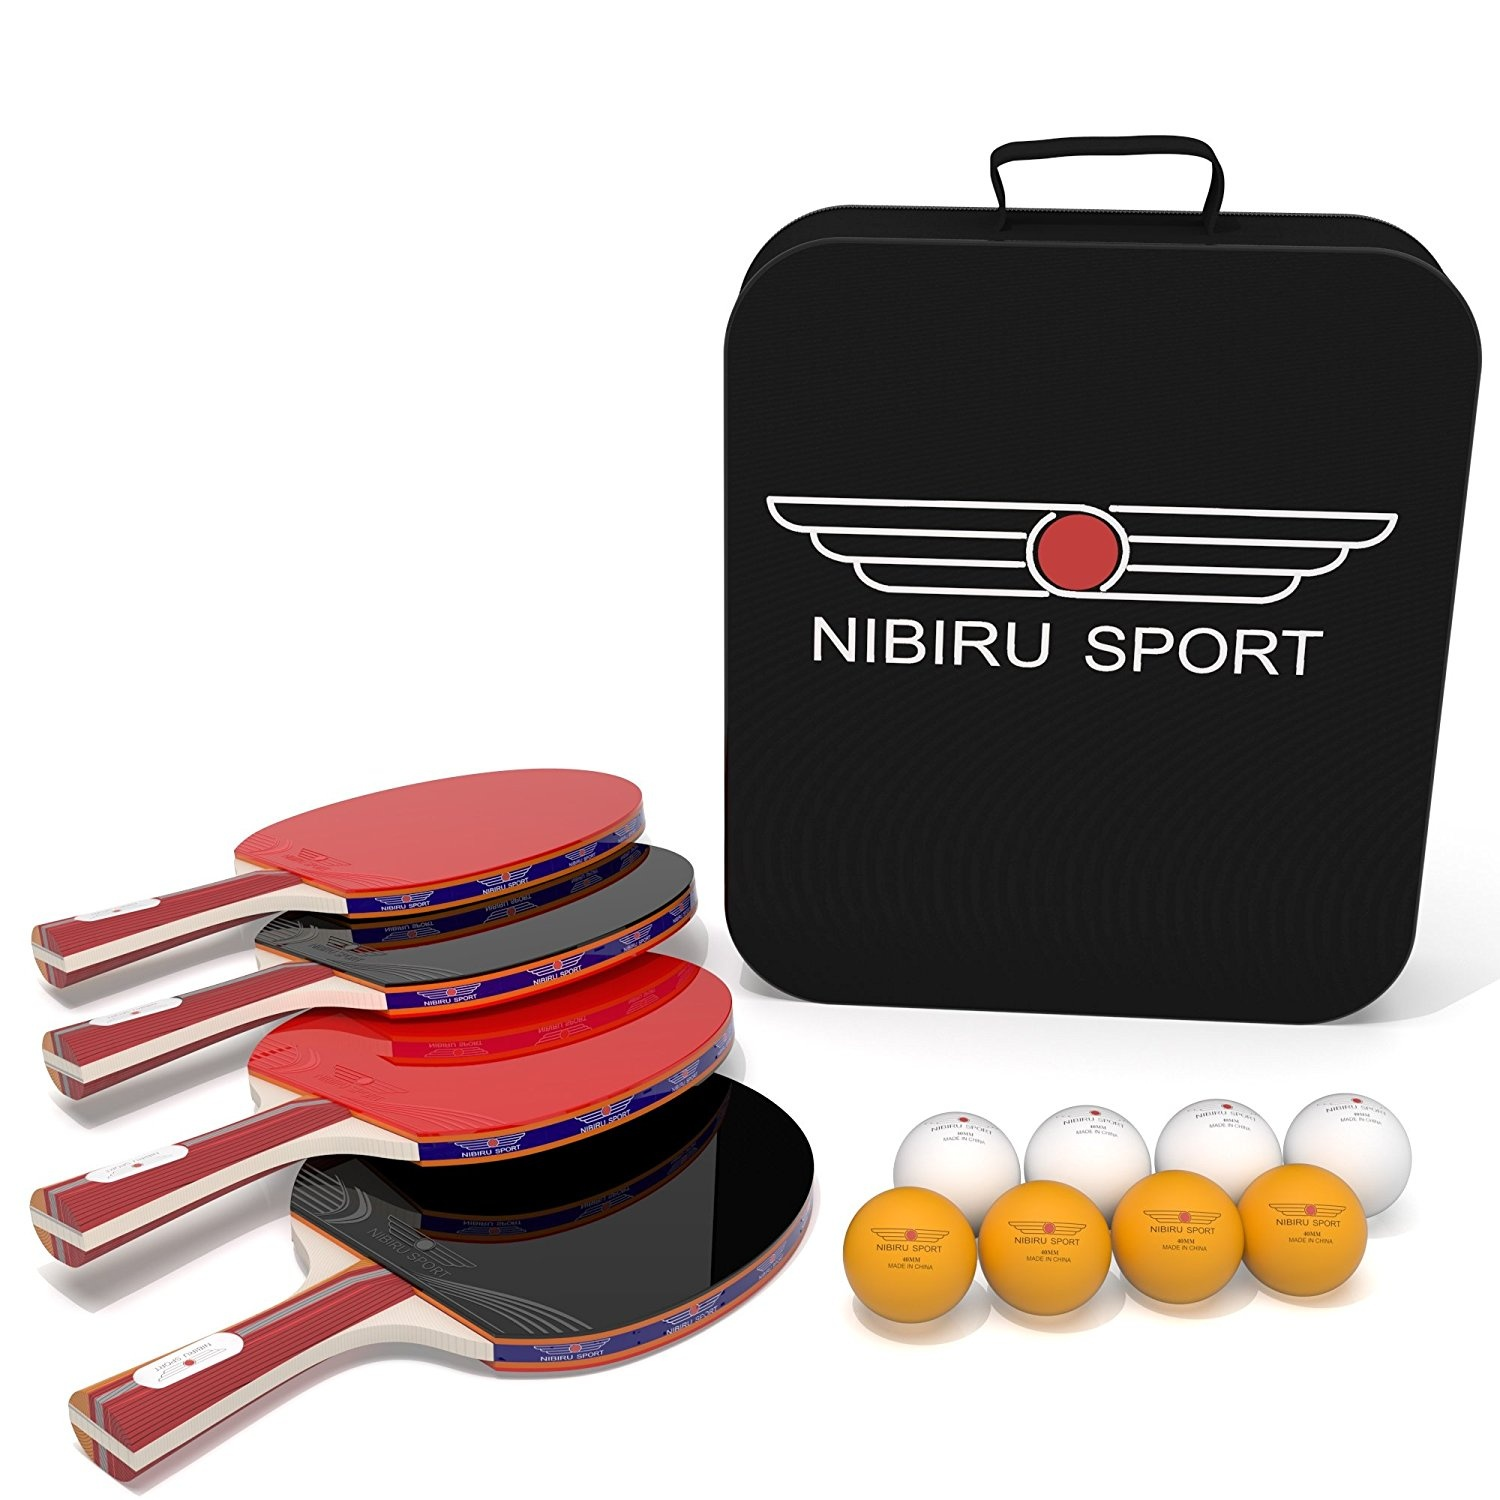 Indoor Games Table Tennis Set 4-Player Bundle 4 Ping Pong Paddles 8 ABS Tournament Level Paddles